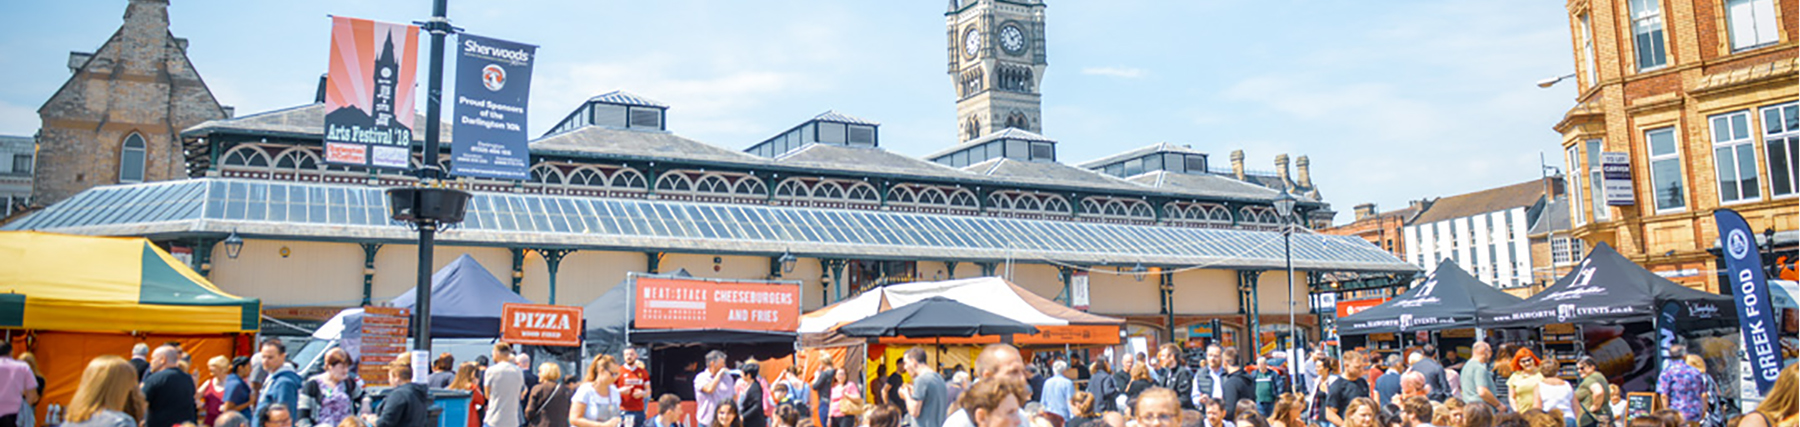 Darlington Markets Food festival